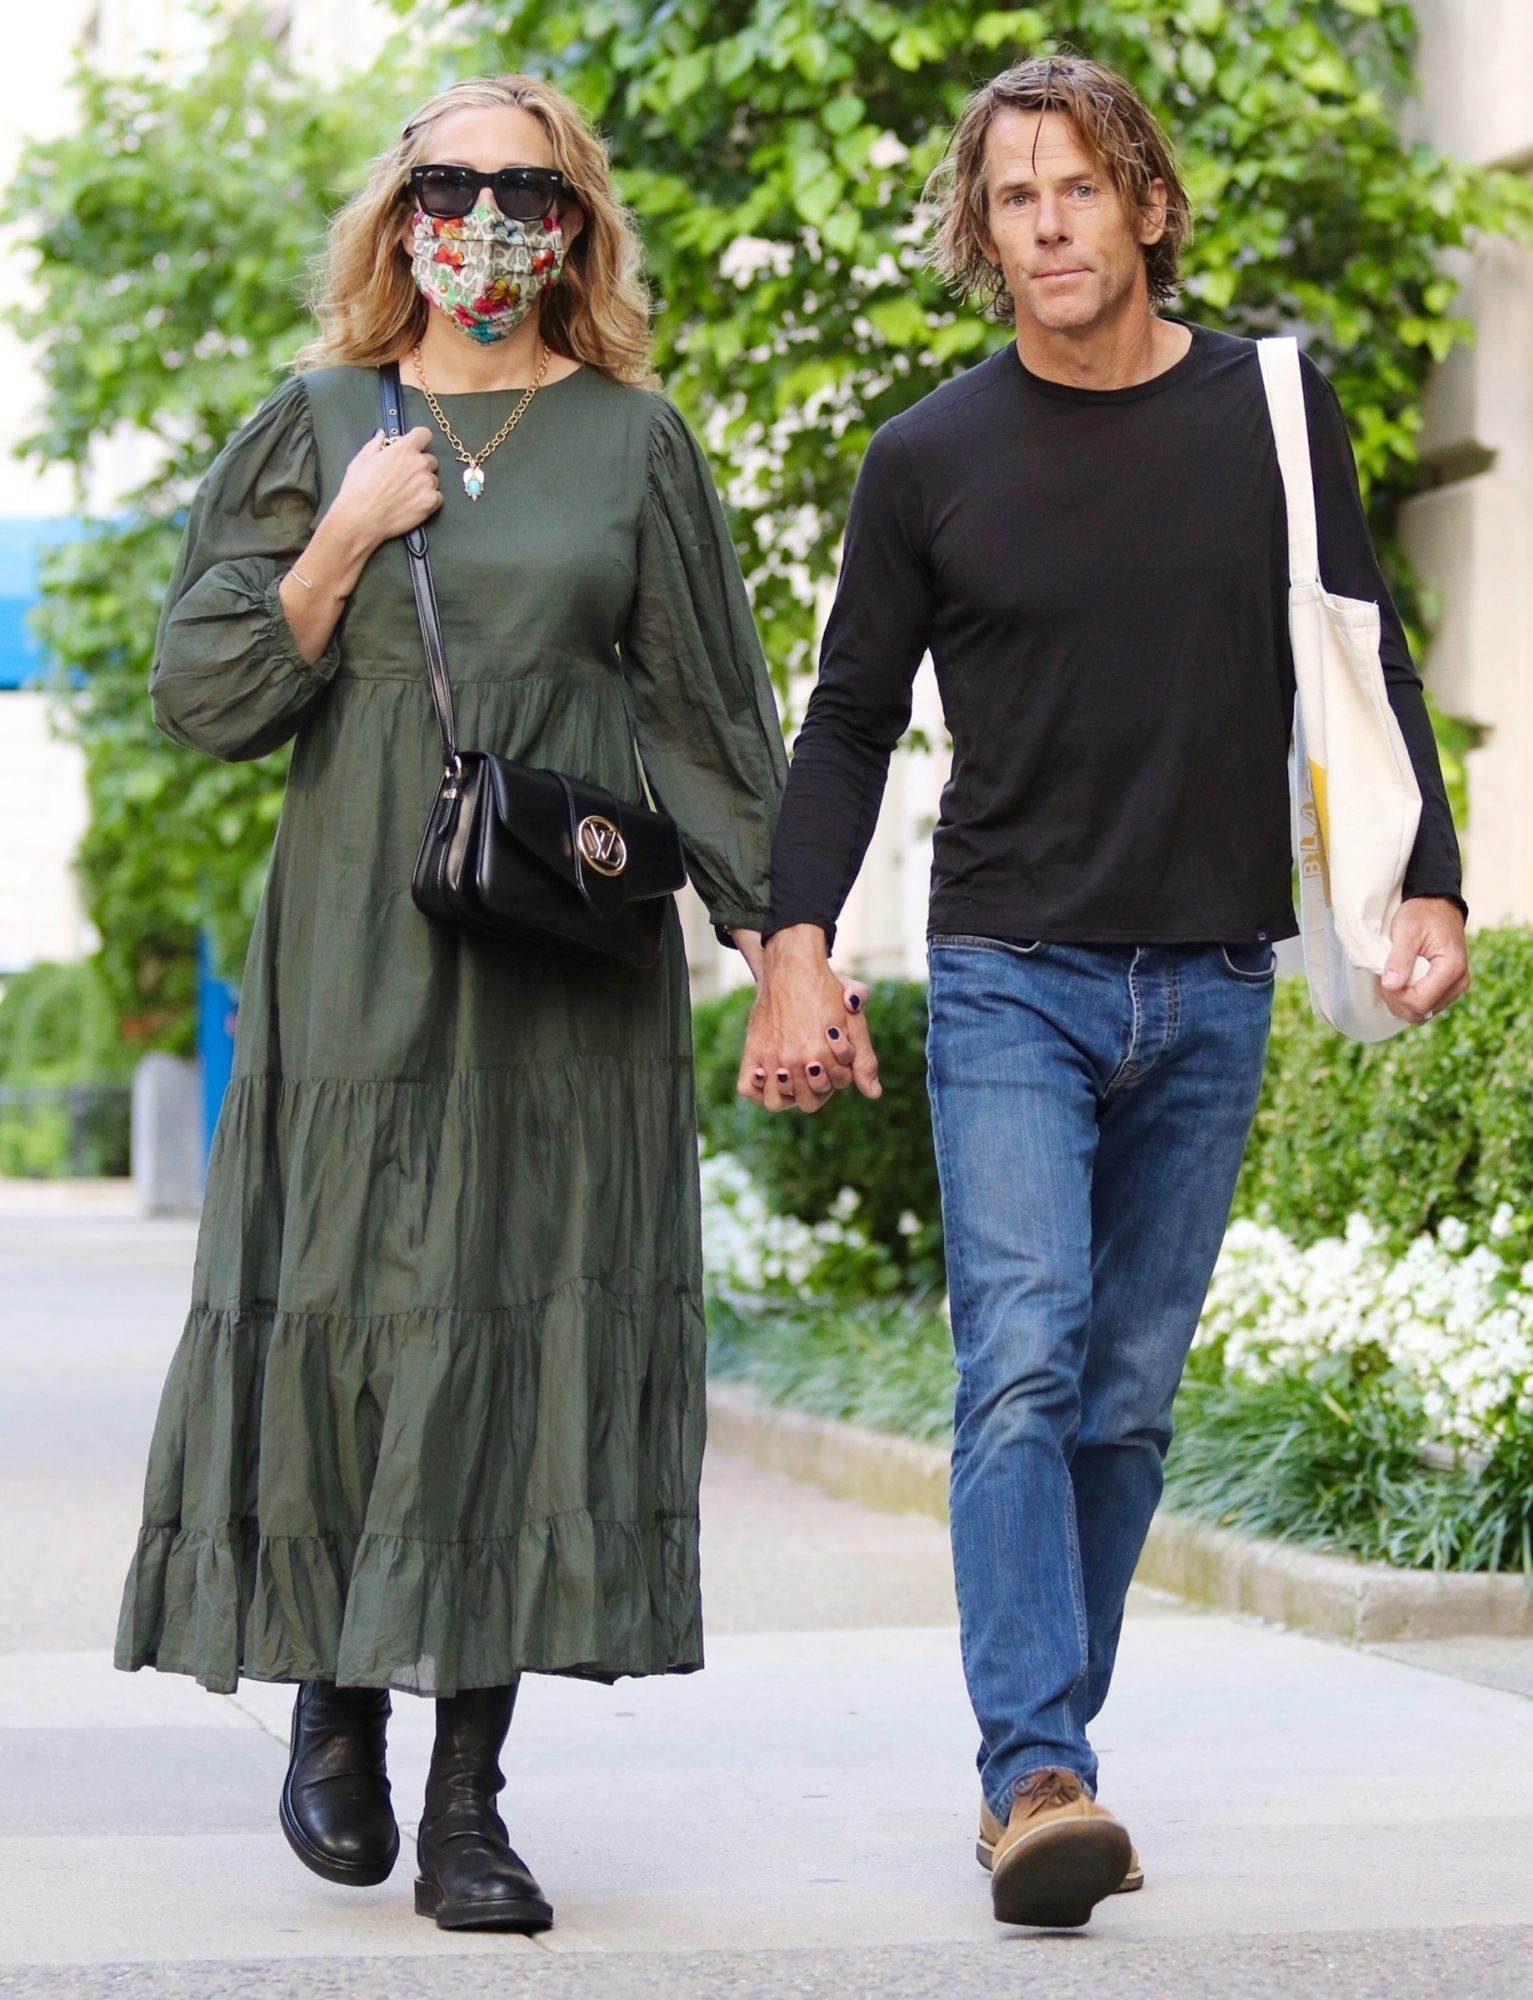 Julia Roberts and her husband Danny Moder hold hands during a romantic walk in Manhattan's Midtown area